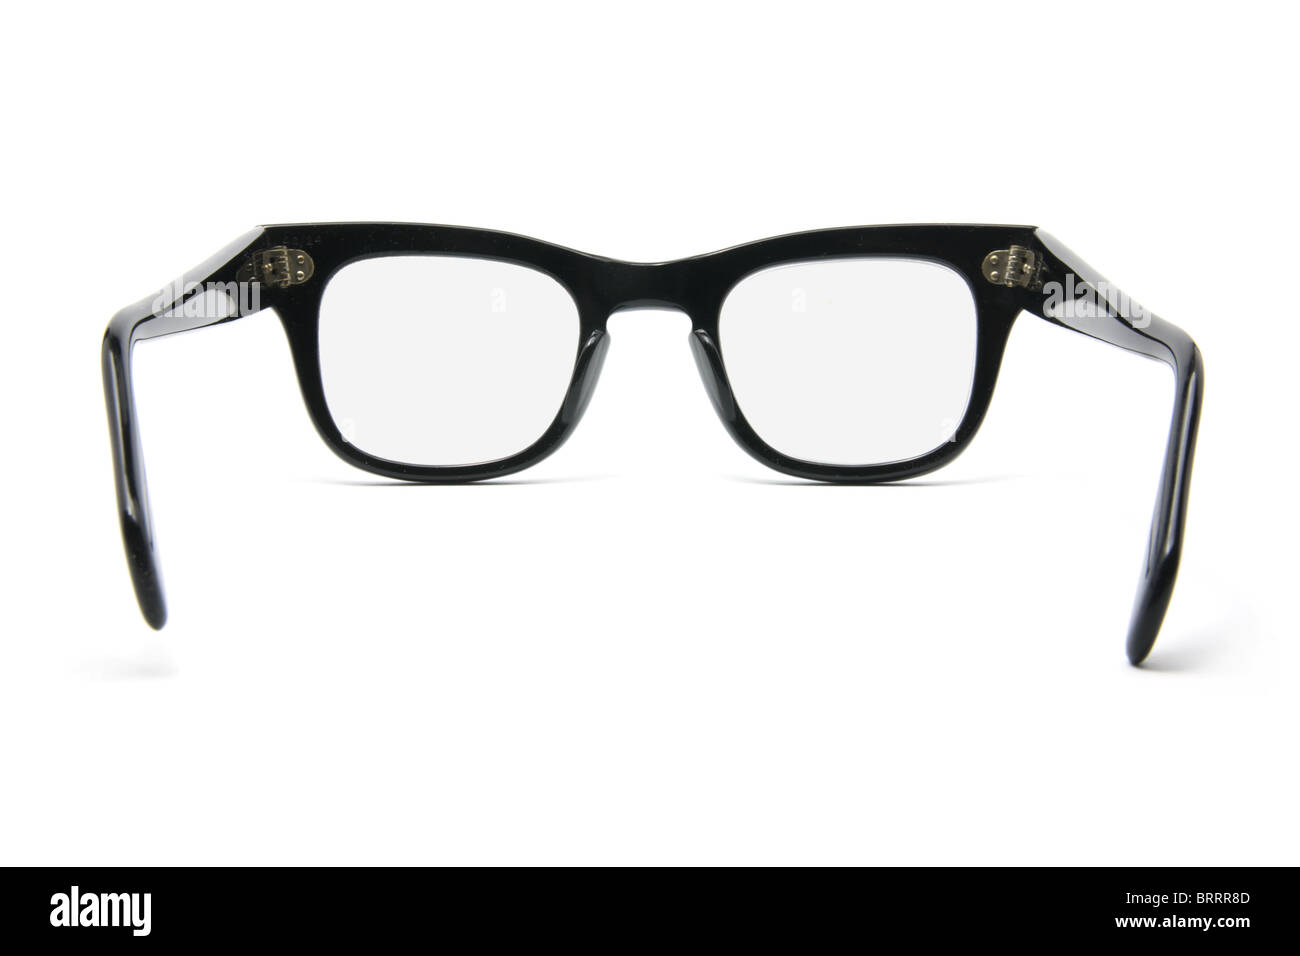 Eyeglasses - Stock Image